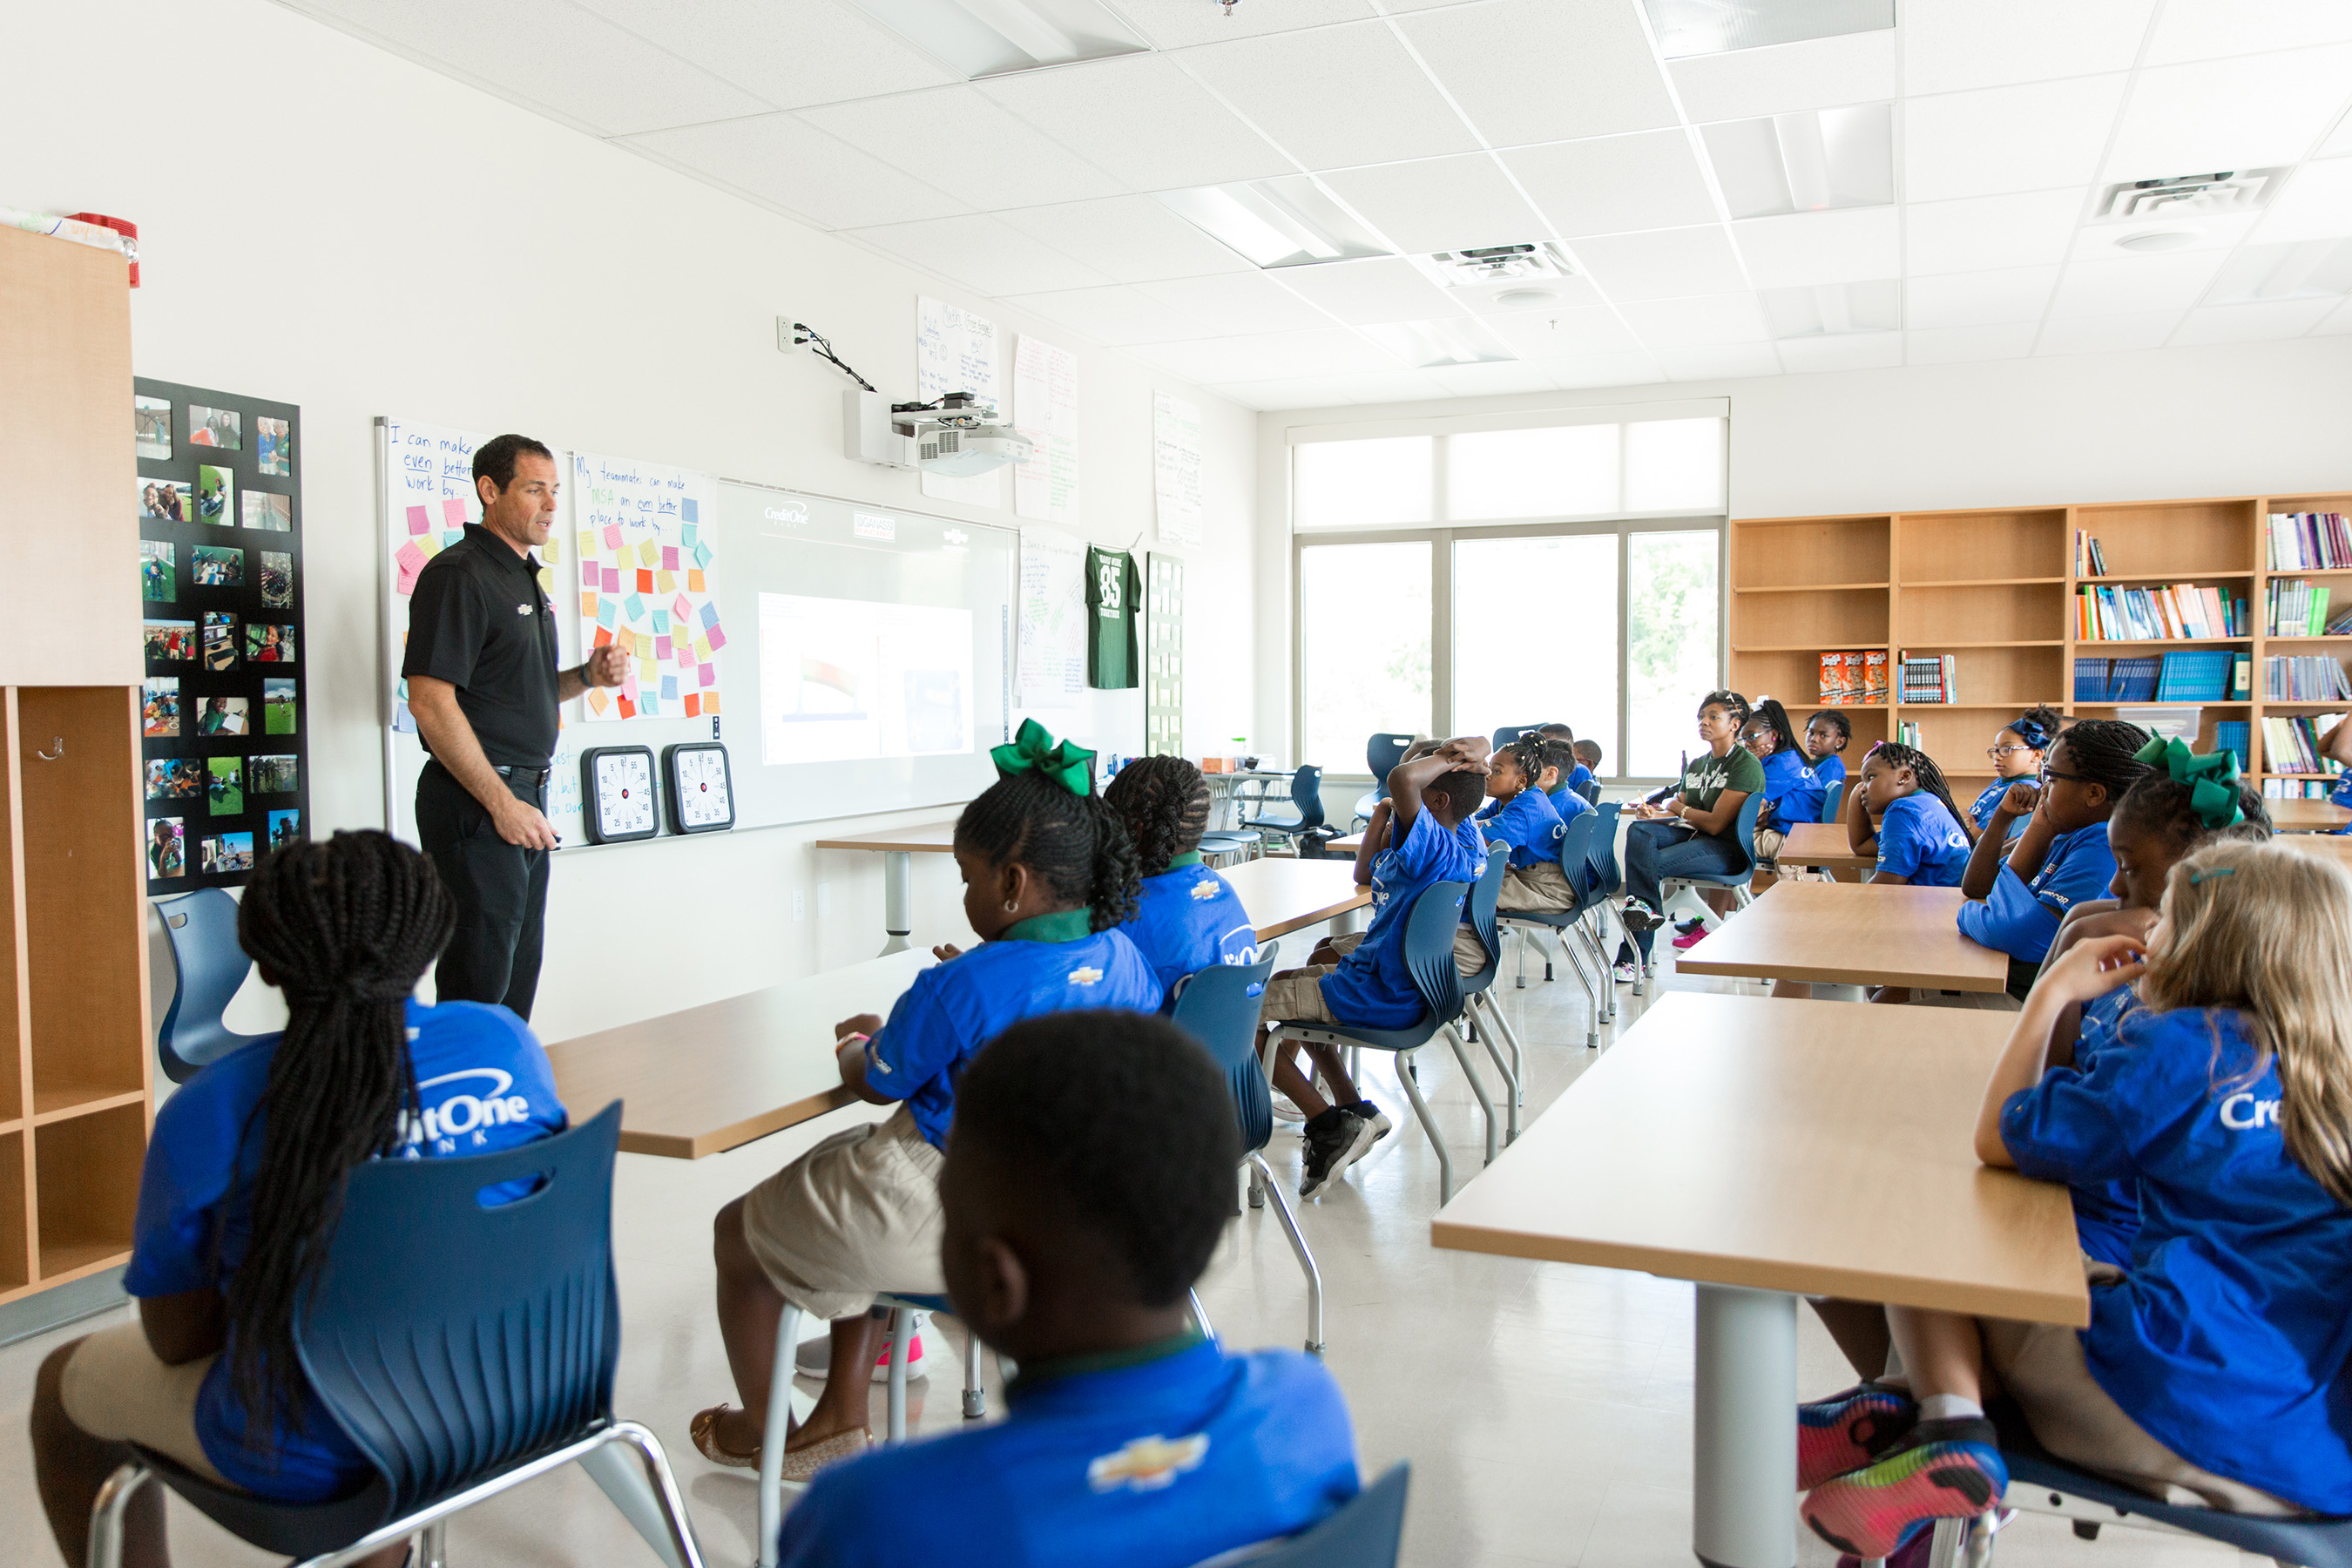 Jeff Price, Chip Ganassi Racing design engineer group leader, speaks to Meeting Street Academy students about STEM subjects on Wednesday, August 2, 2017 in Charleston, S.C. (Minette Hand Photography)